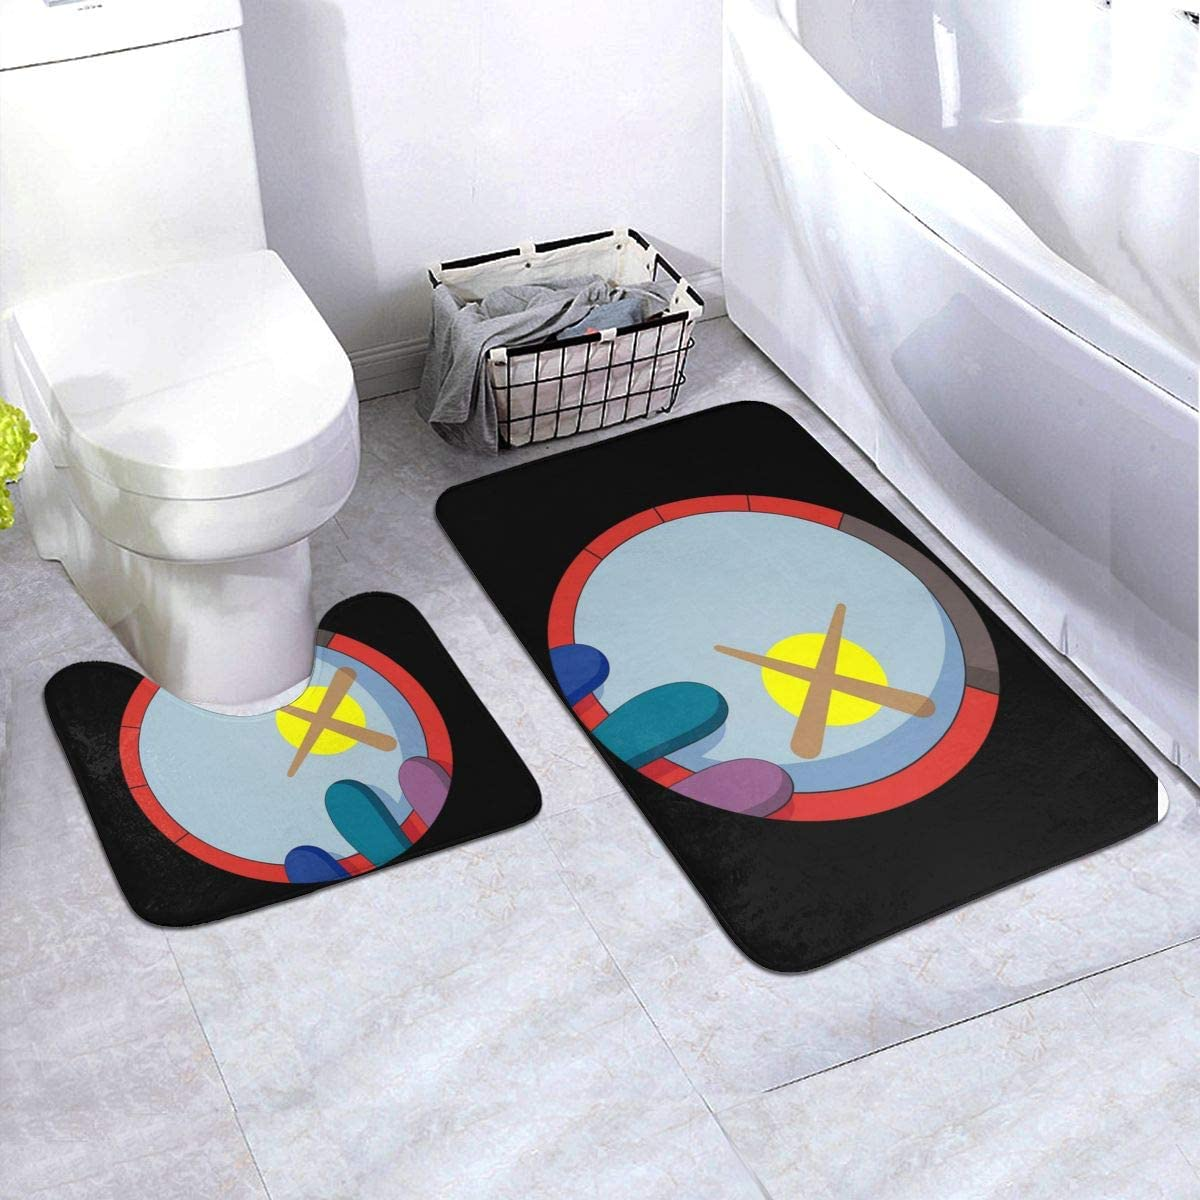 KAWS Bathroom Rug Mats Set 3 Piece Anti-Skid Pads Bath Mat + Contour + Toilet Lid Cover Bathroom Antiskid Pad 19.5in X 31.5in